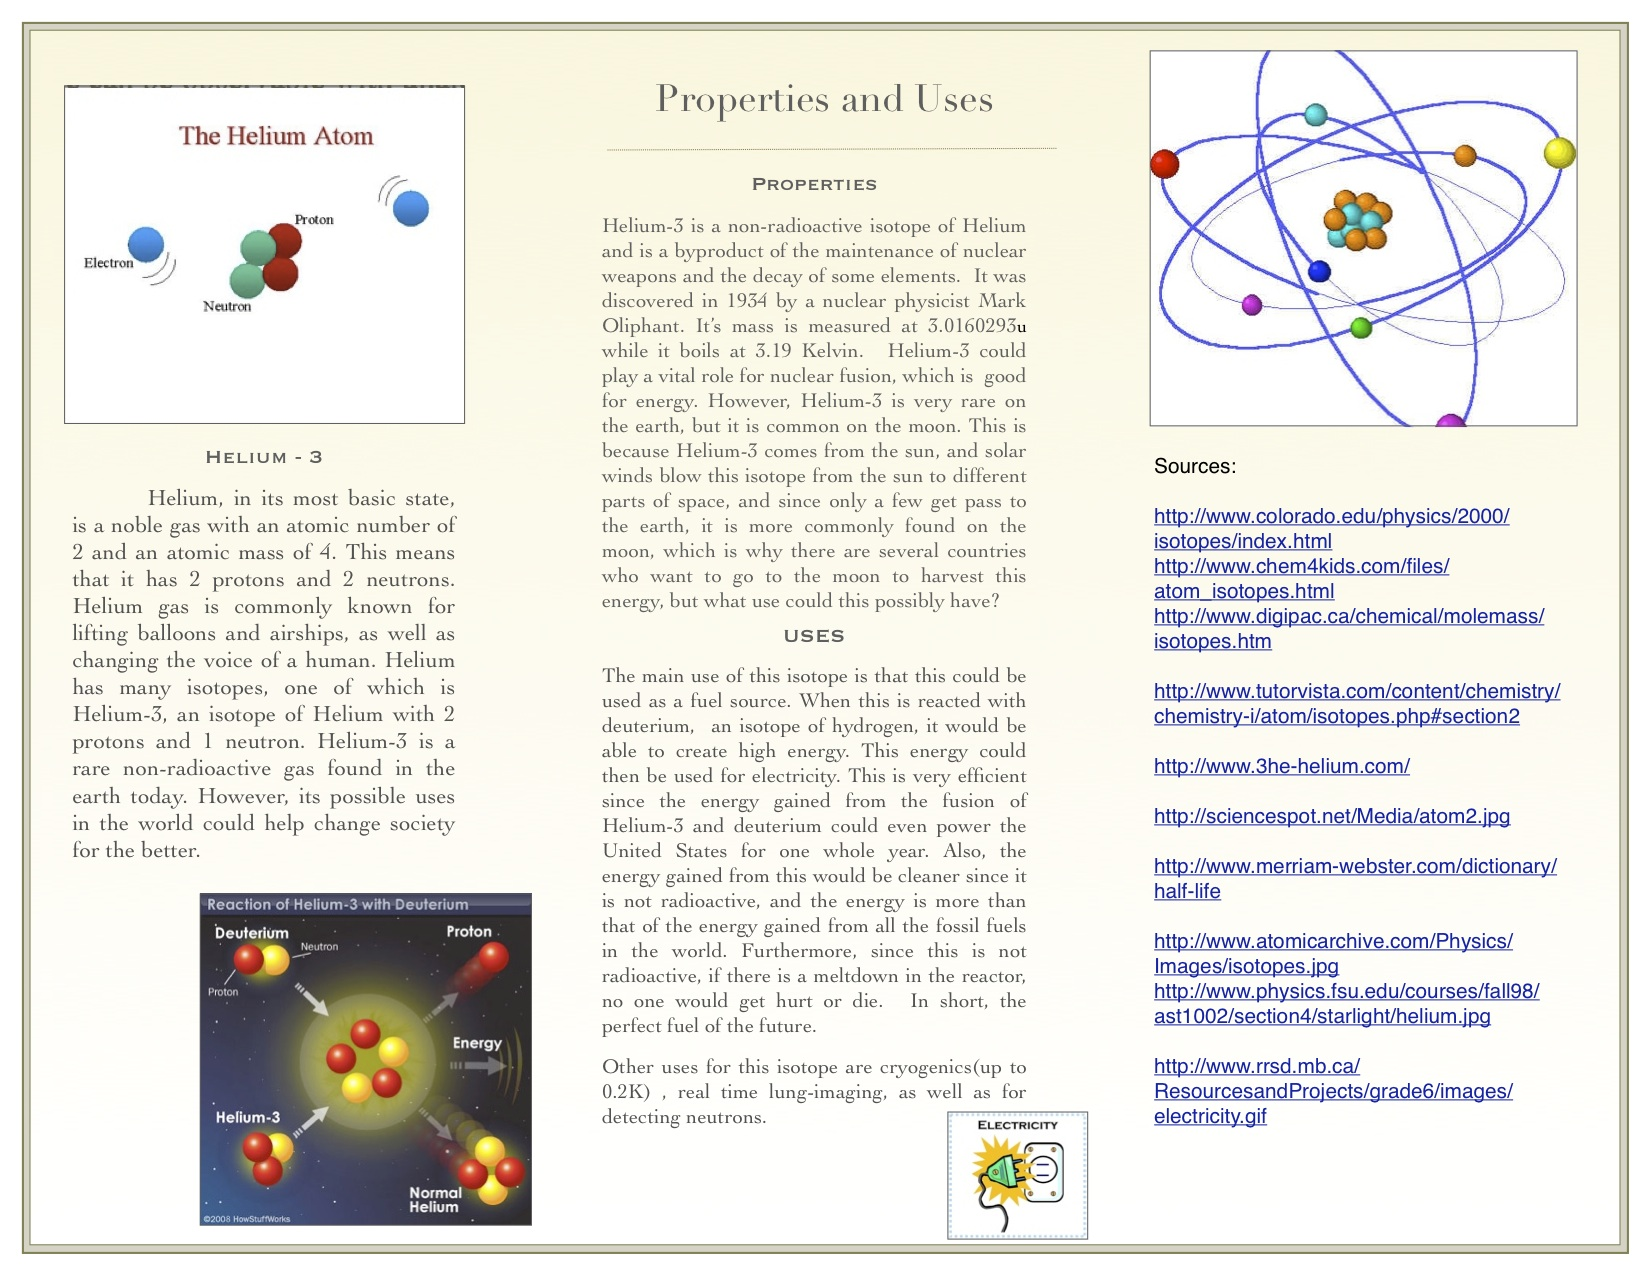 Chemistry Isotopes Brochure Yet To Be Told